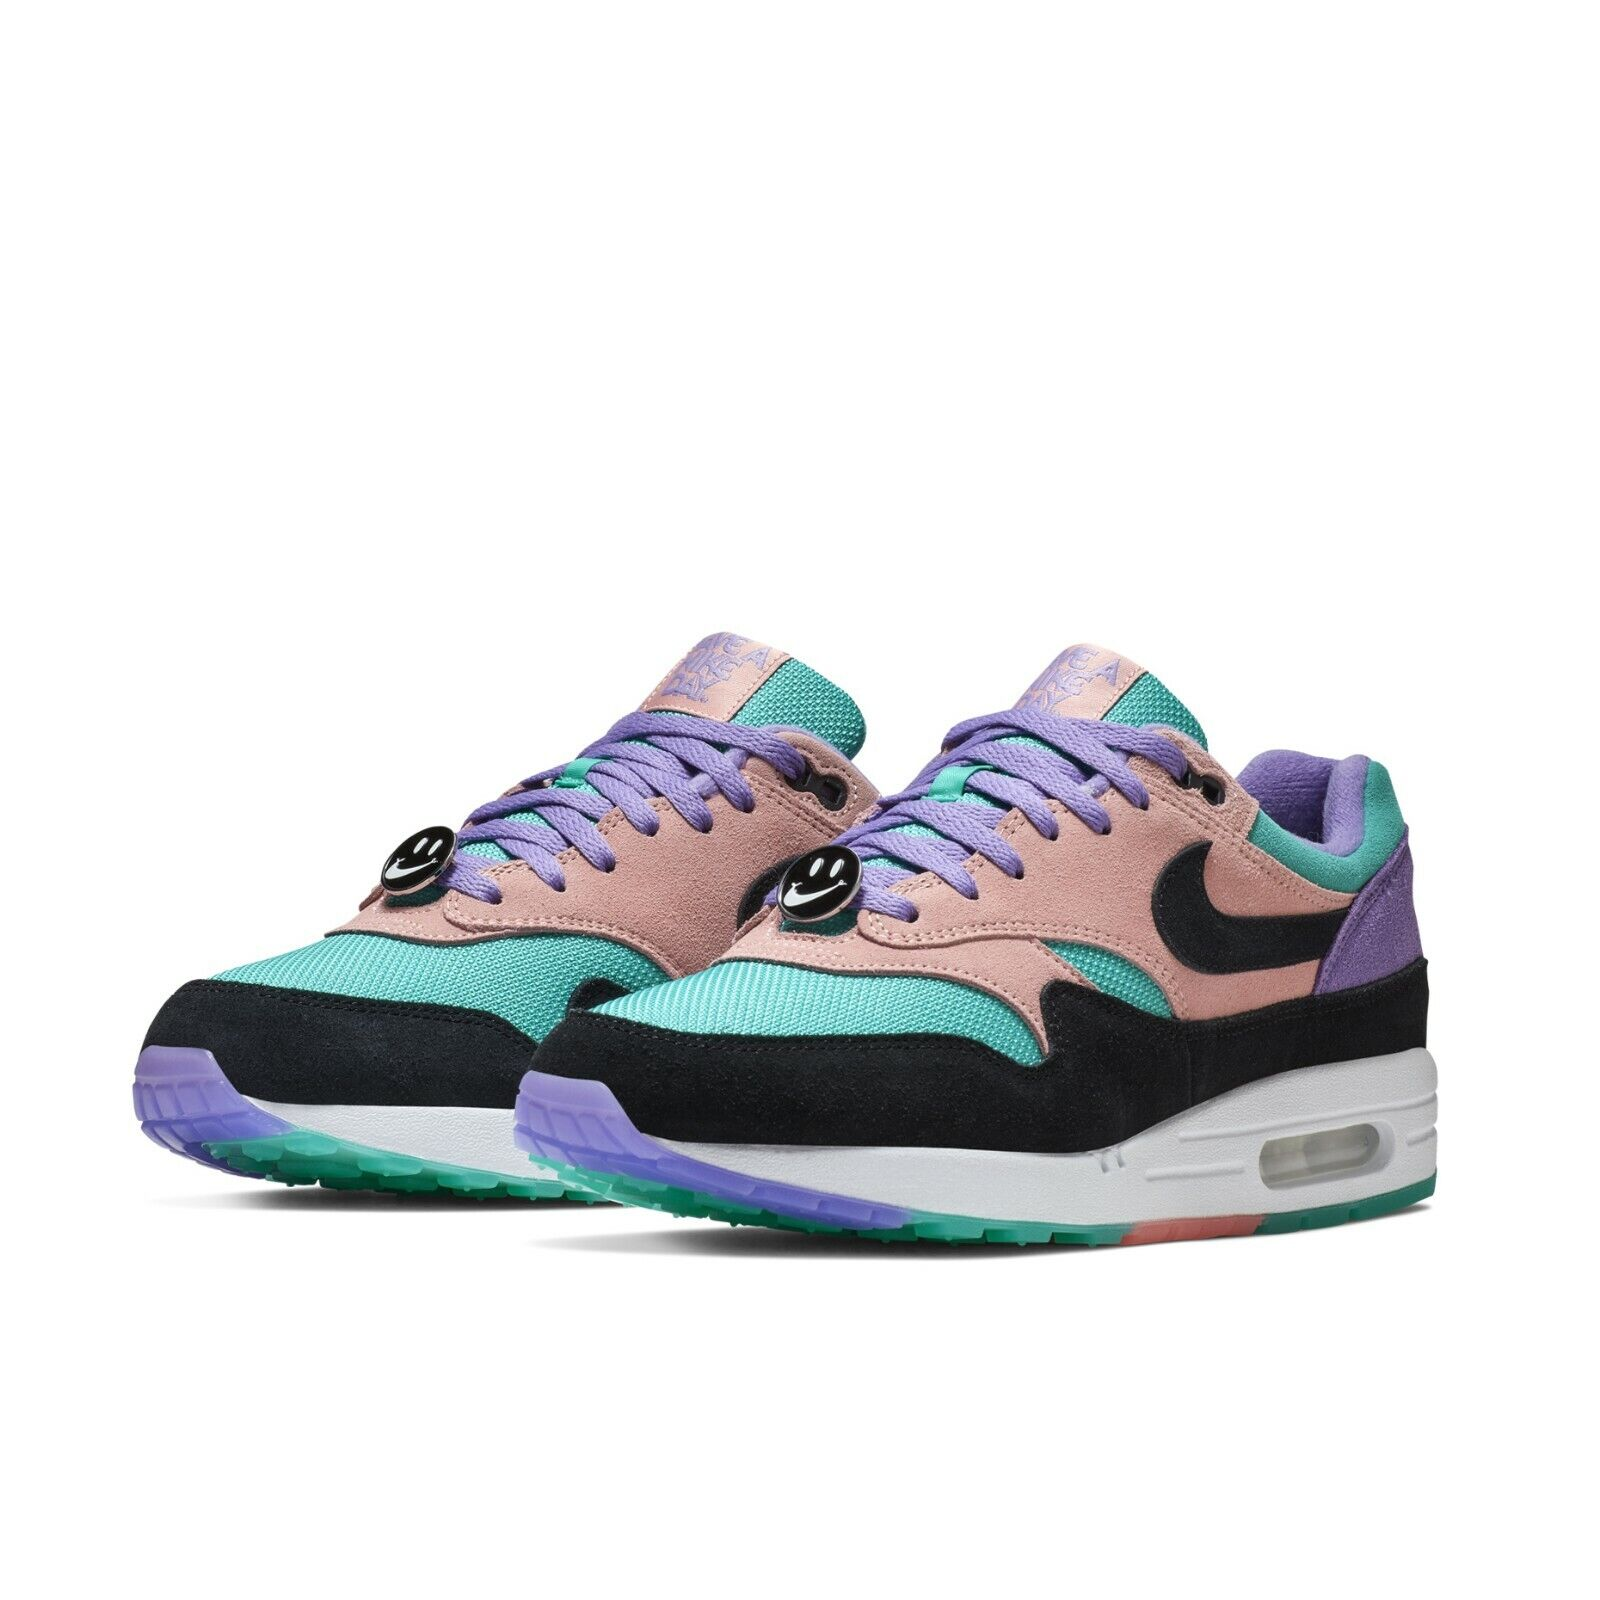 sneakers for cheap 863c3 0e308 Nike Mens Air Max 1 ND Have A Nike Day Purple Black Coral Sneakers  BQ8929-500